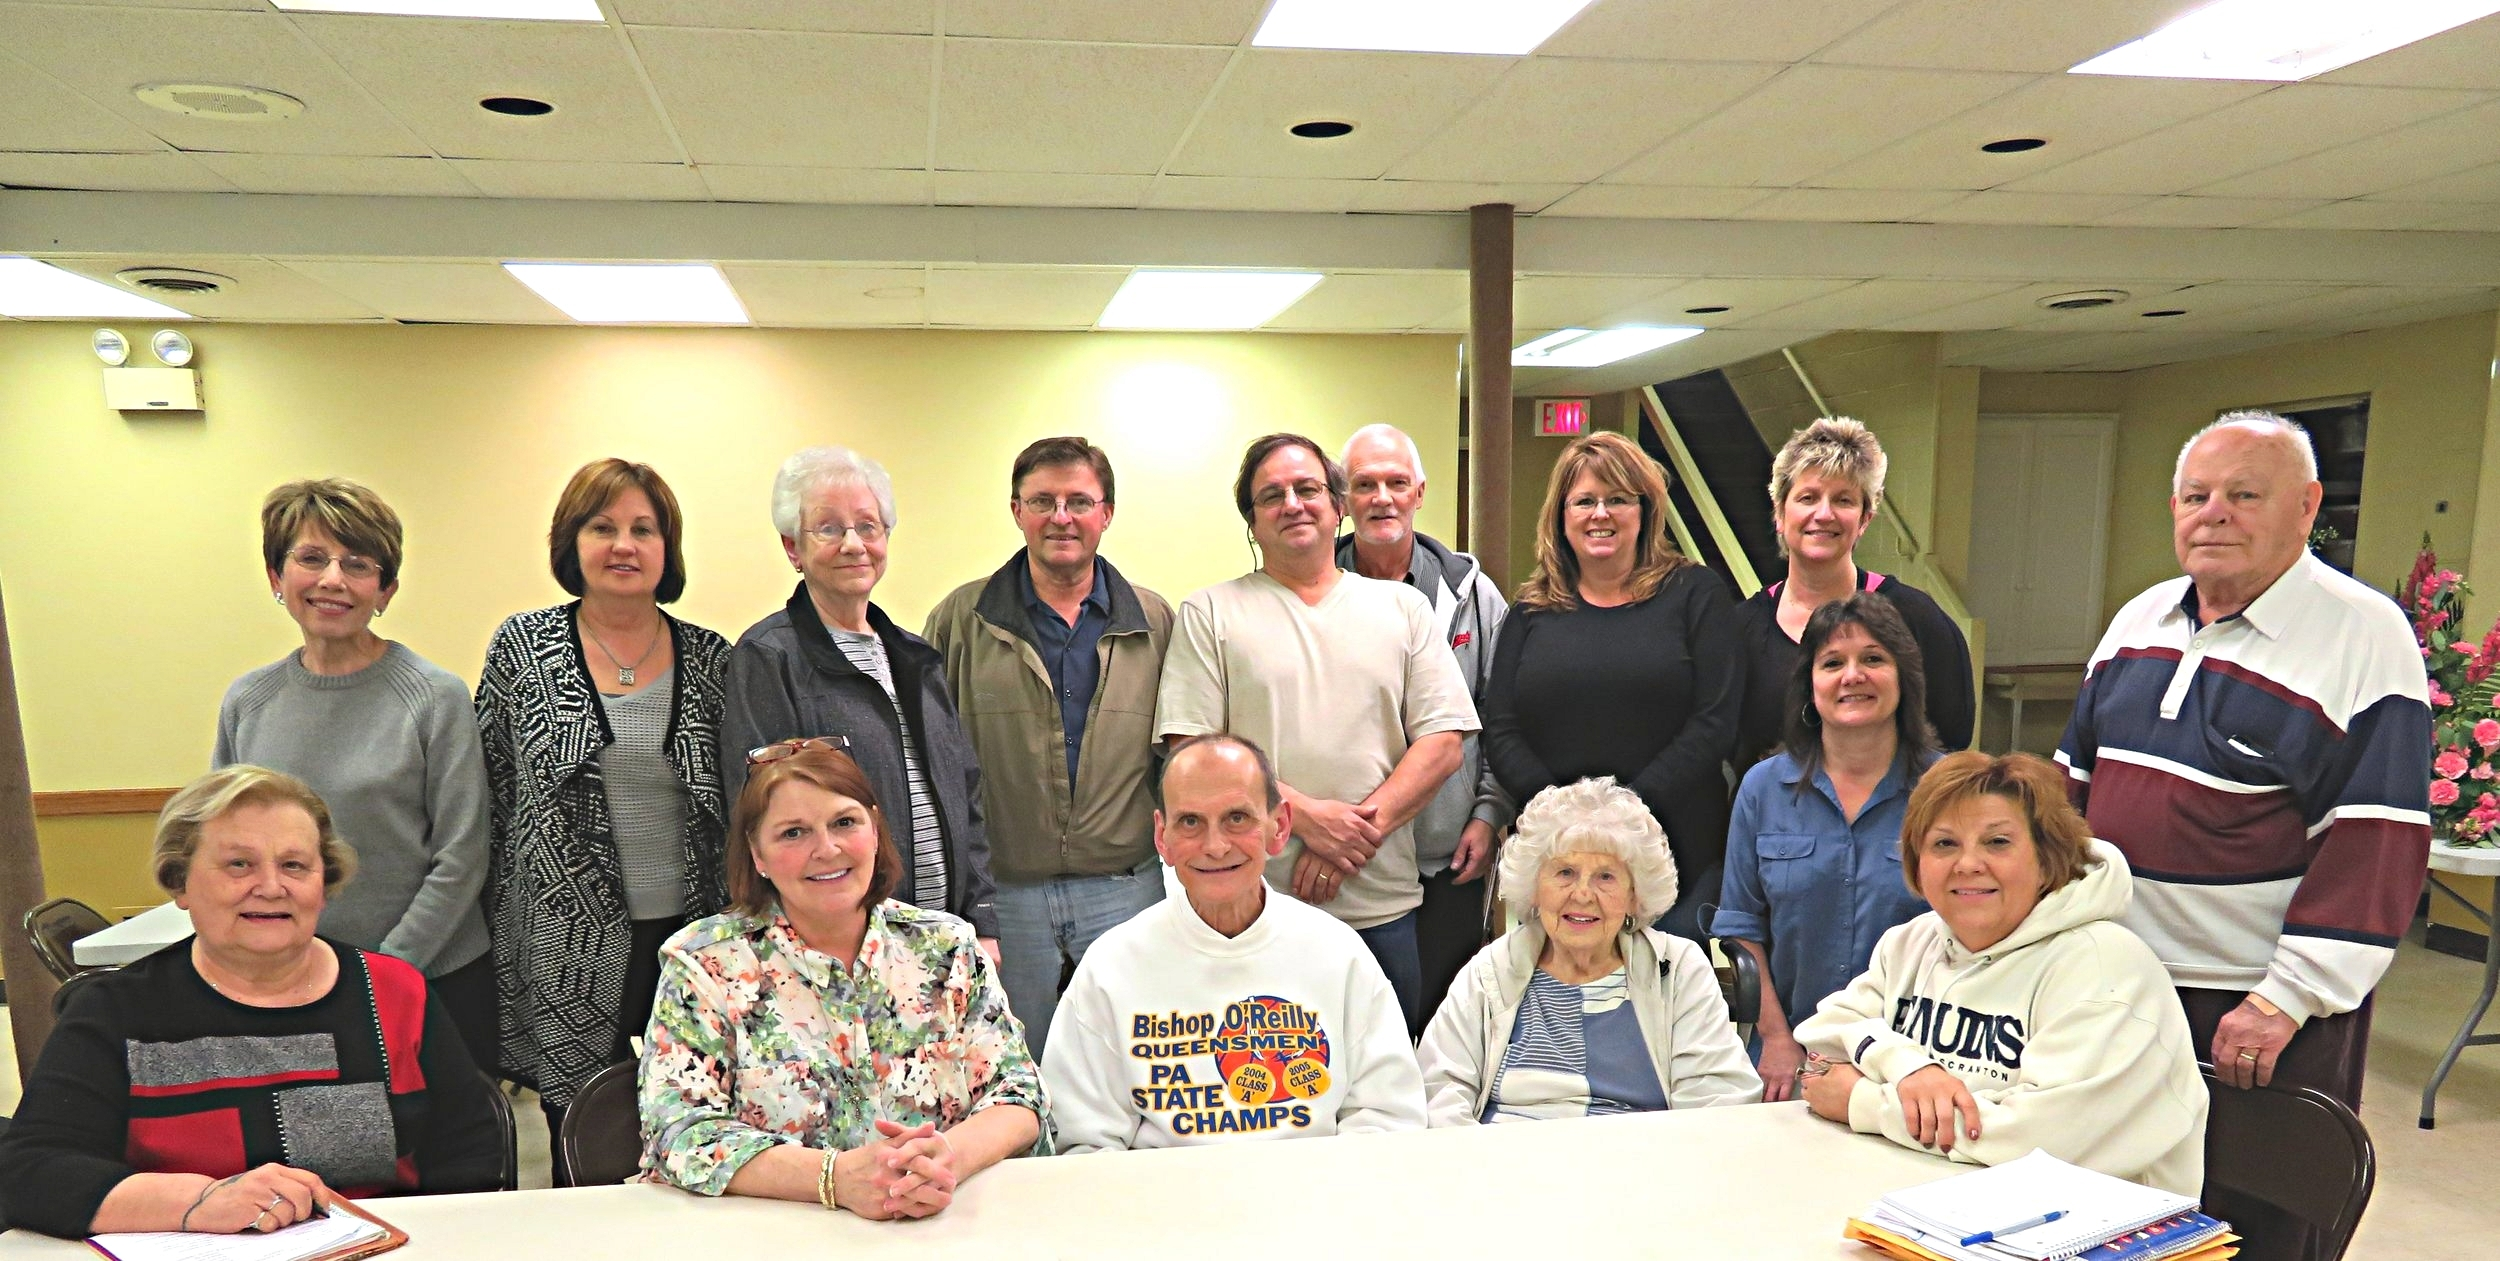 Bazaar Committee - Our largest fundraiser of the year is led by this dedicated committee. Meetings are held as needed leading up to the annual BIG TENT BAZAAR in July. All are welcome and encouraged to be a part of this major endeavor!